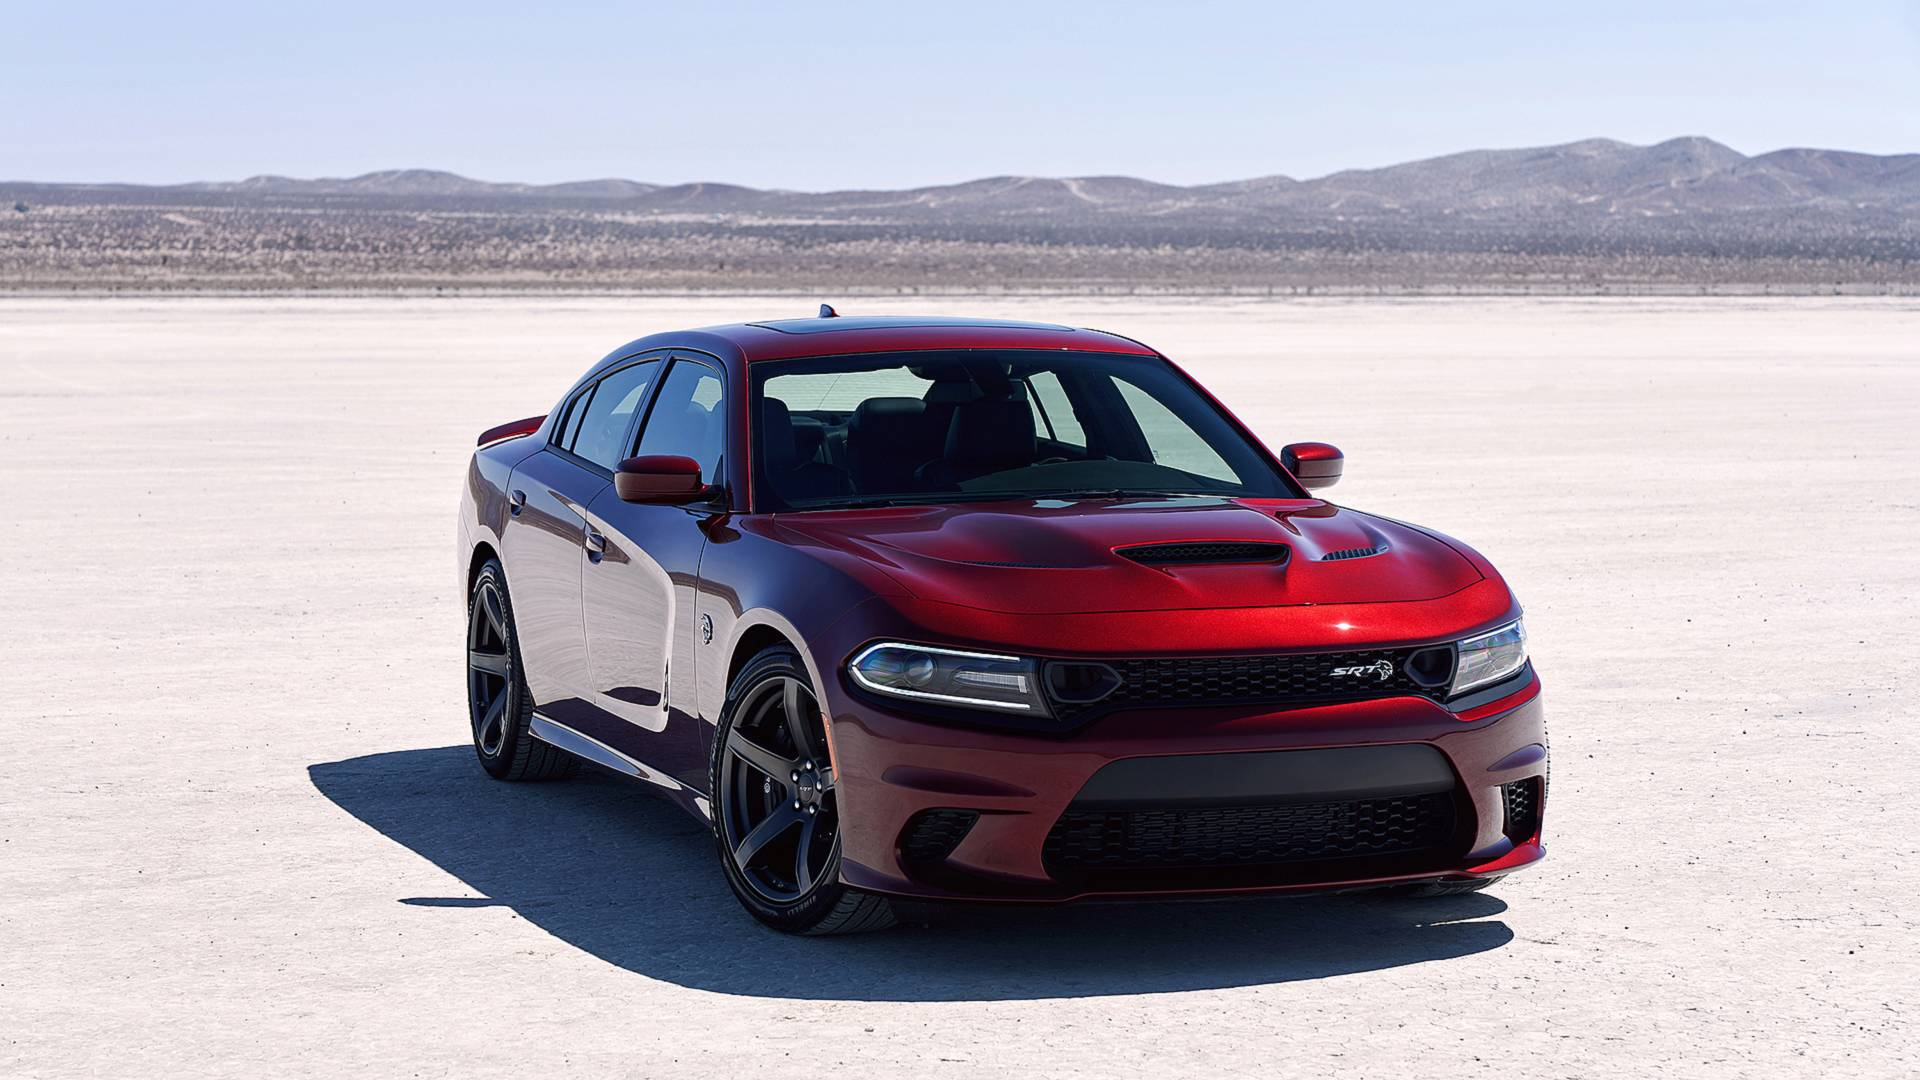 2020 Dodge Charger Widebody Models Allegedly Confirmed By